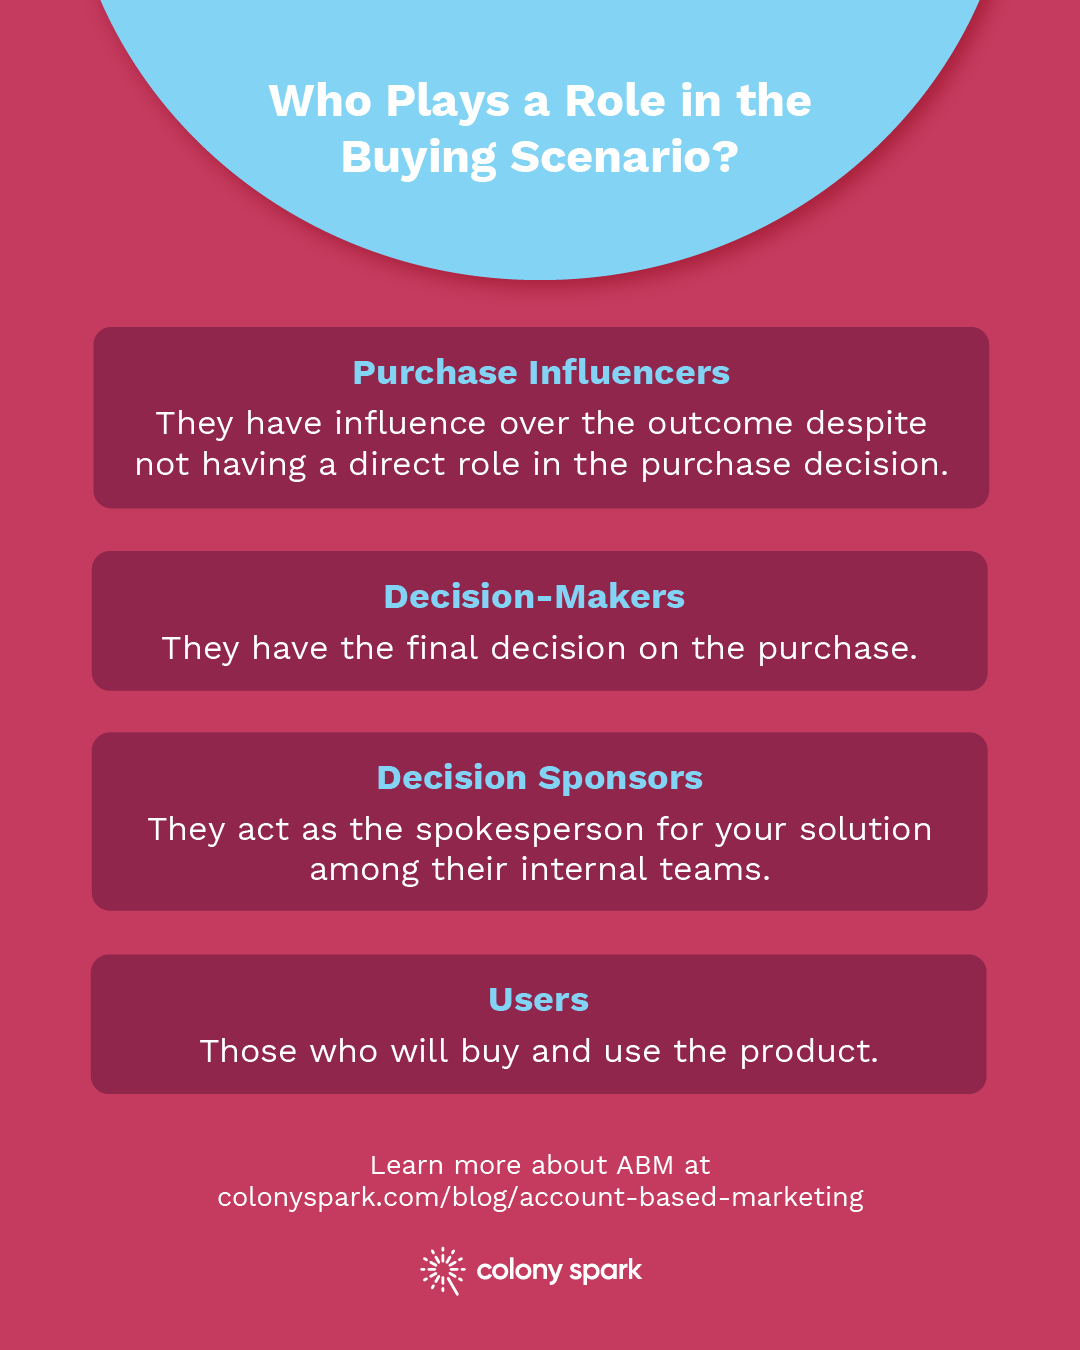 Who Plays a Role in the Buying Scenario?